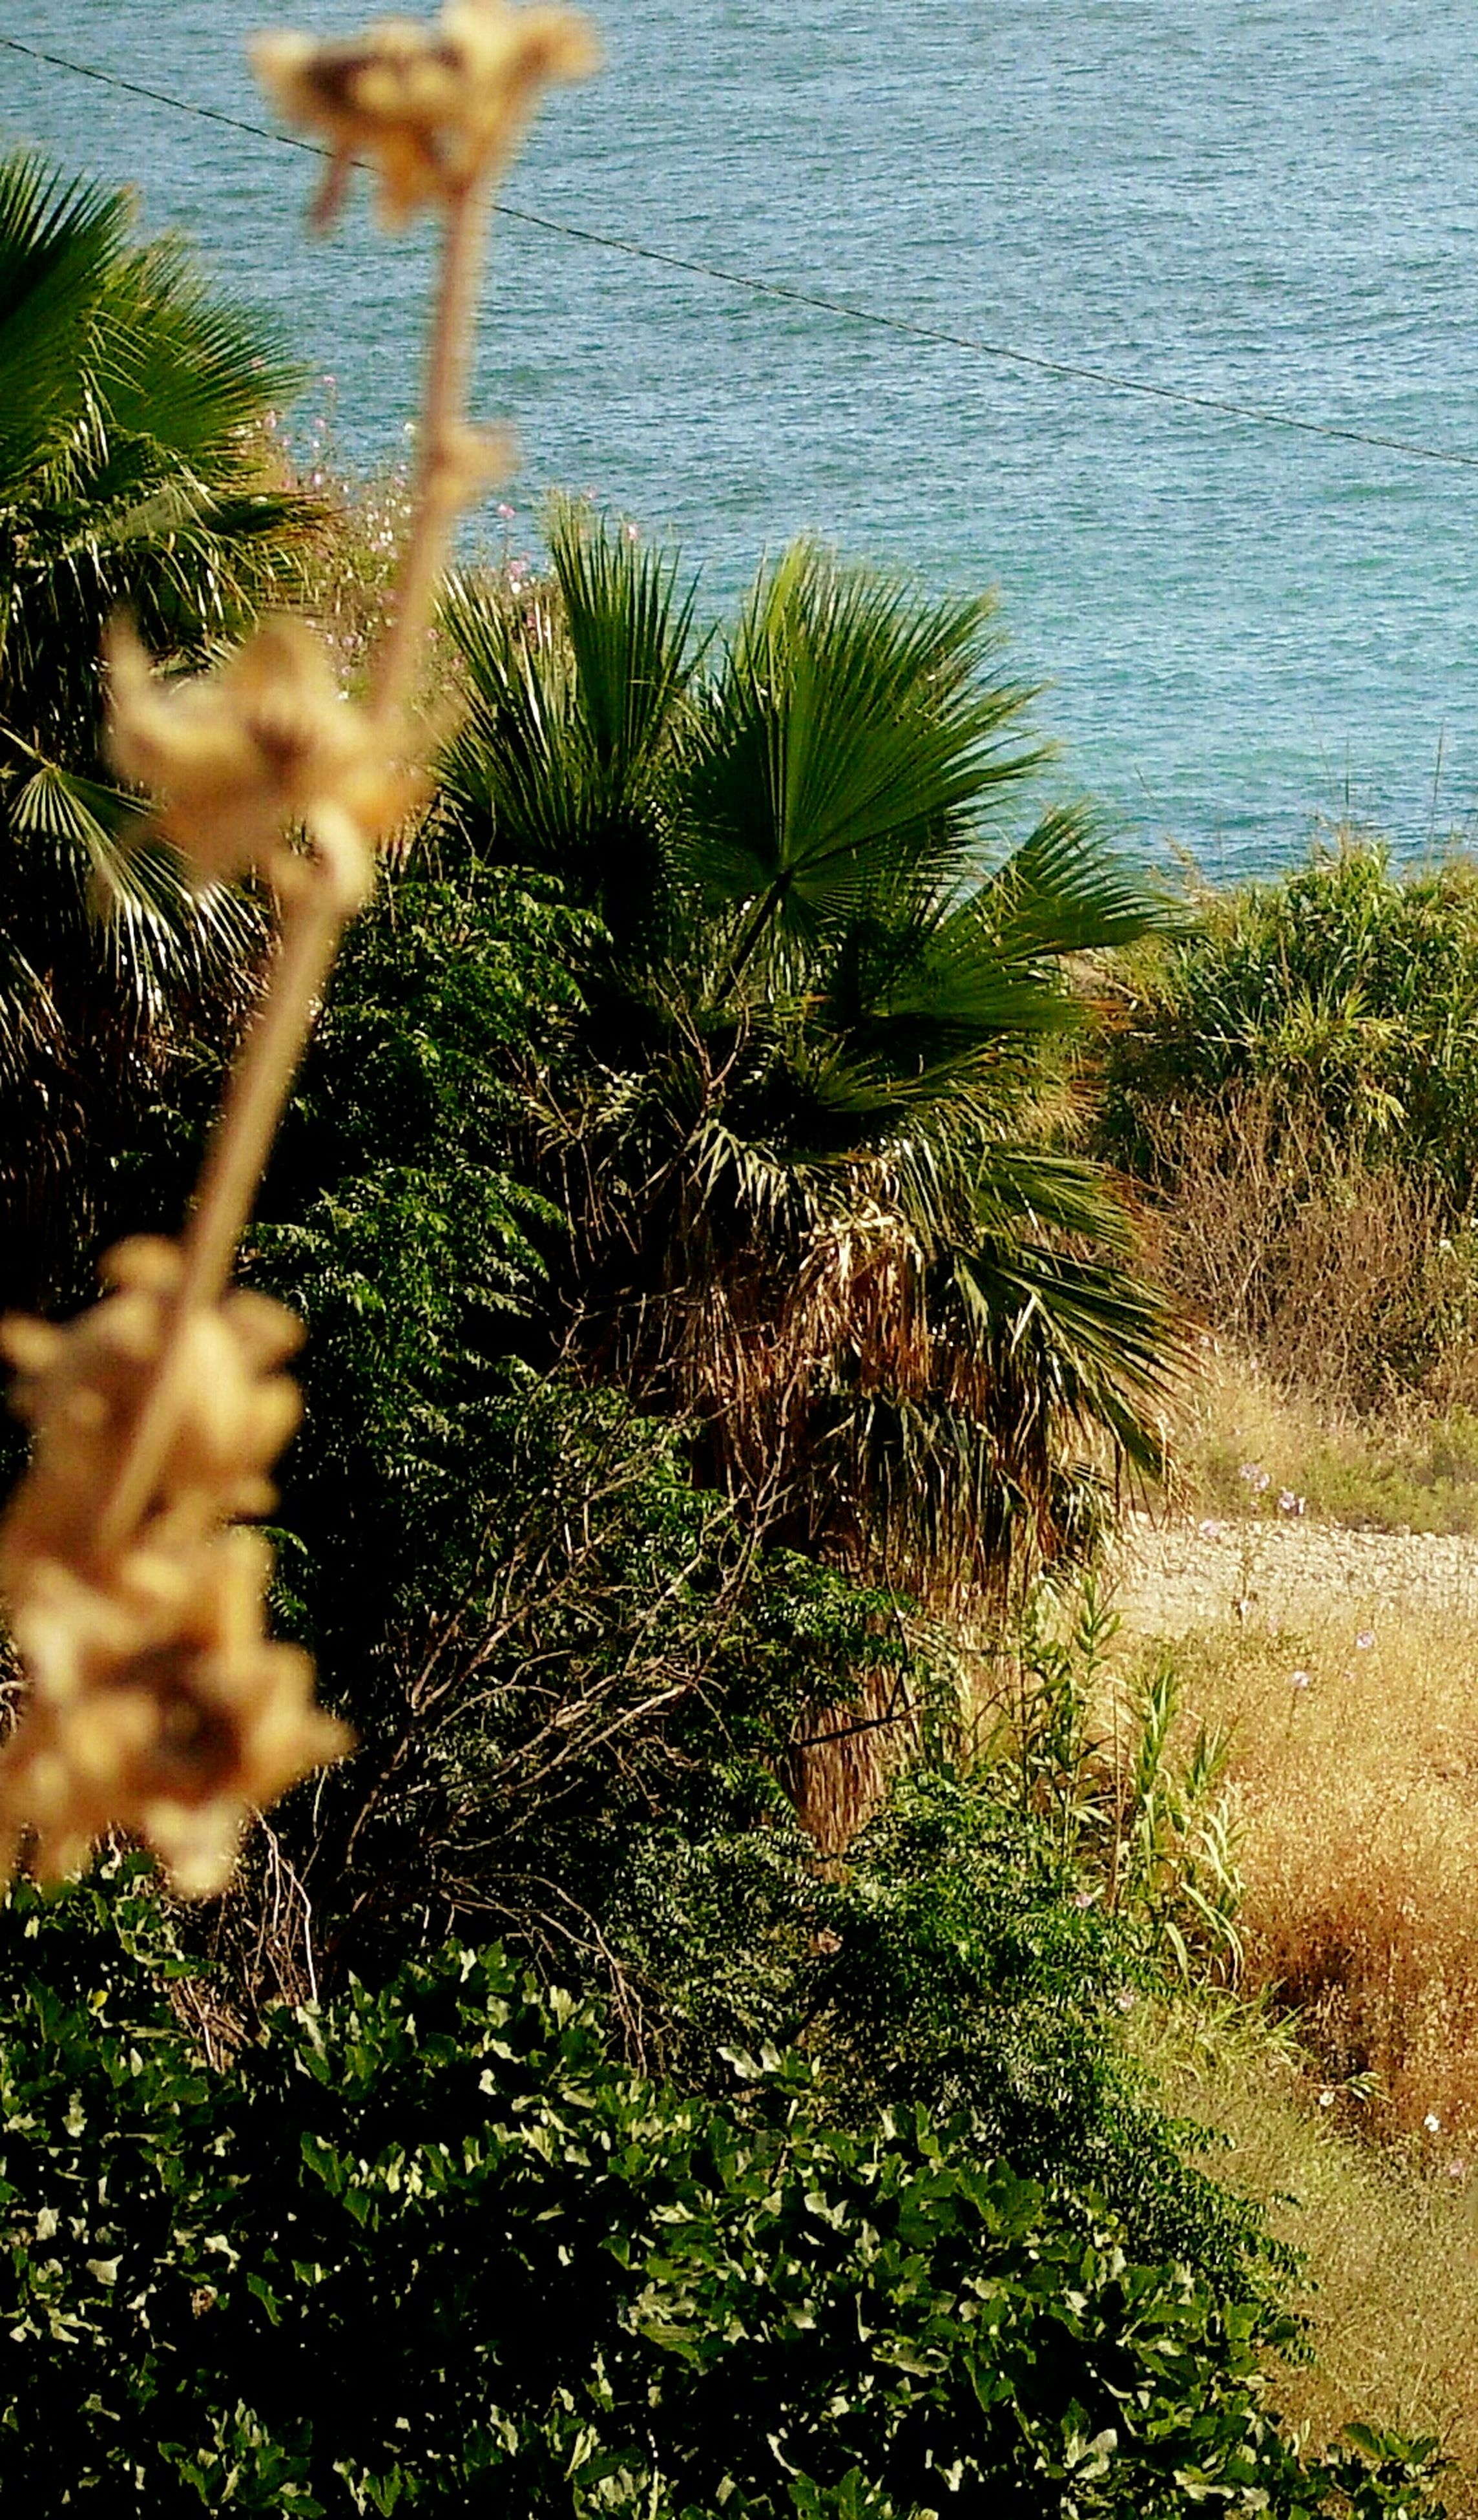 nature, water, growth, sea, day, outdoors, tranquility, plant, beauty in nature, green color, tranquil scene, no people, scenics, grass, beach, horizon over water, close-up, tree